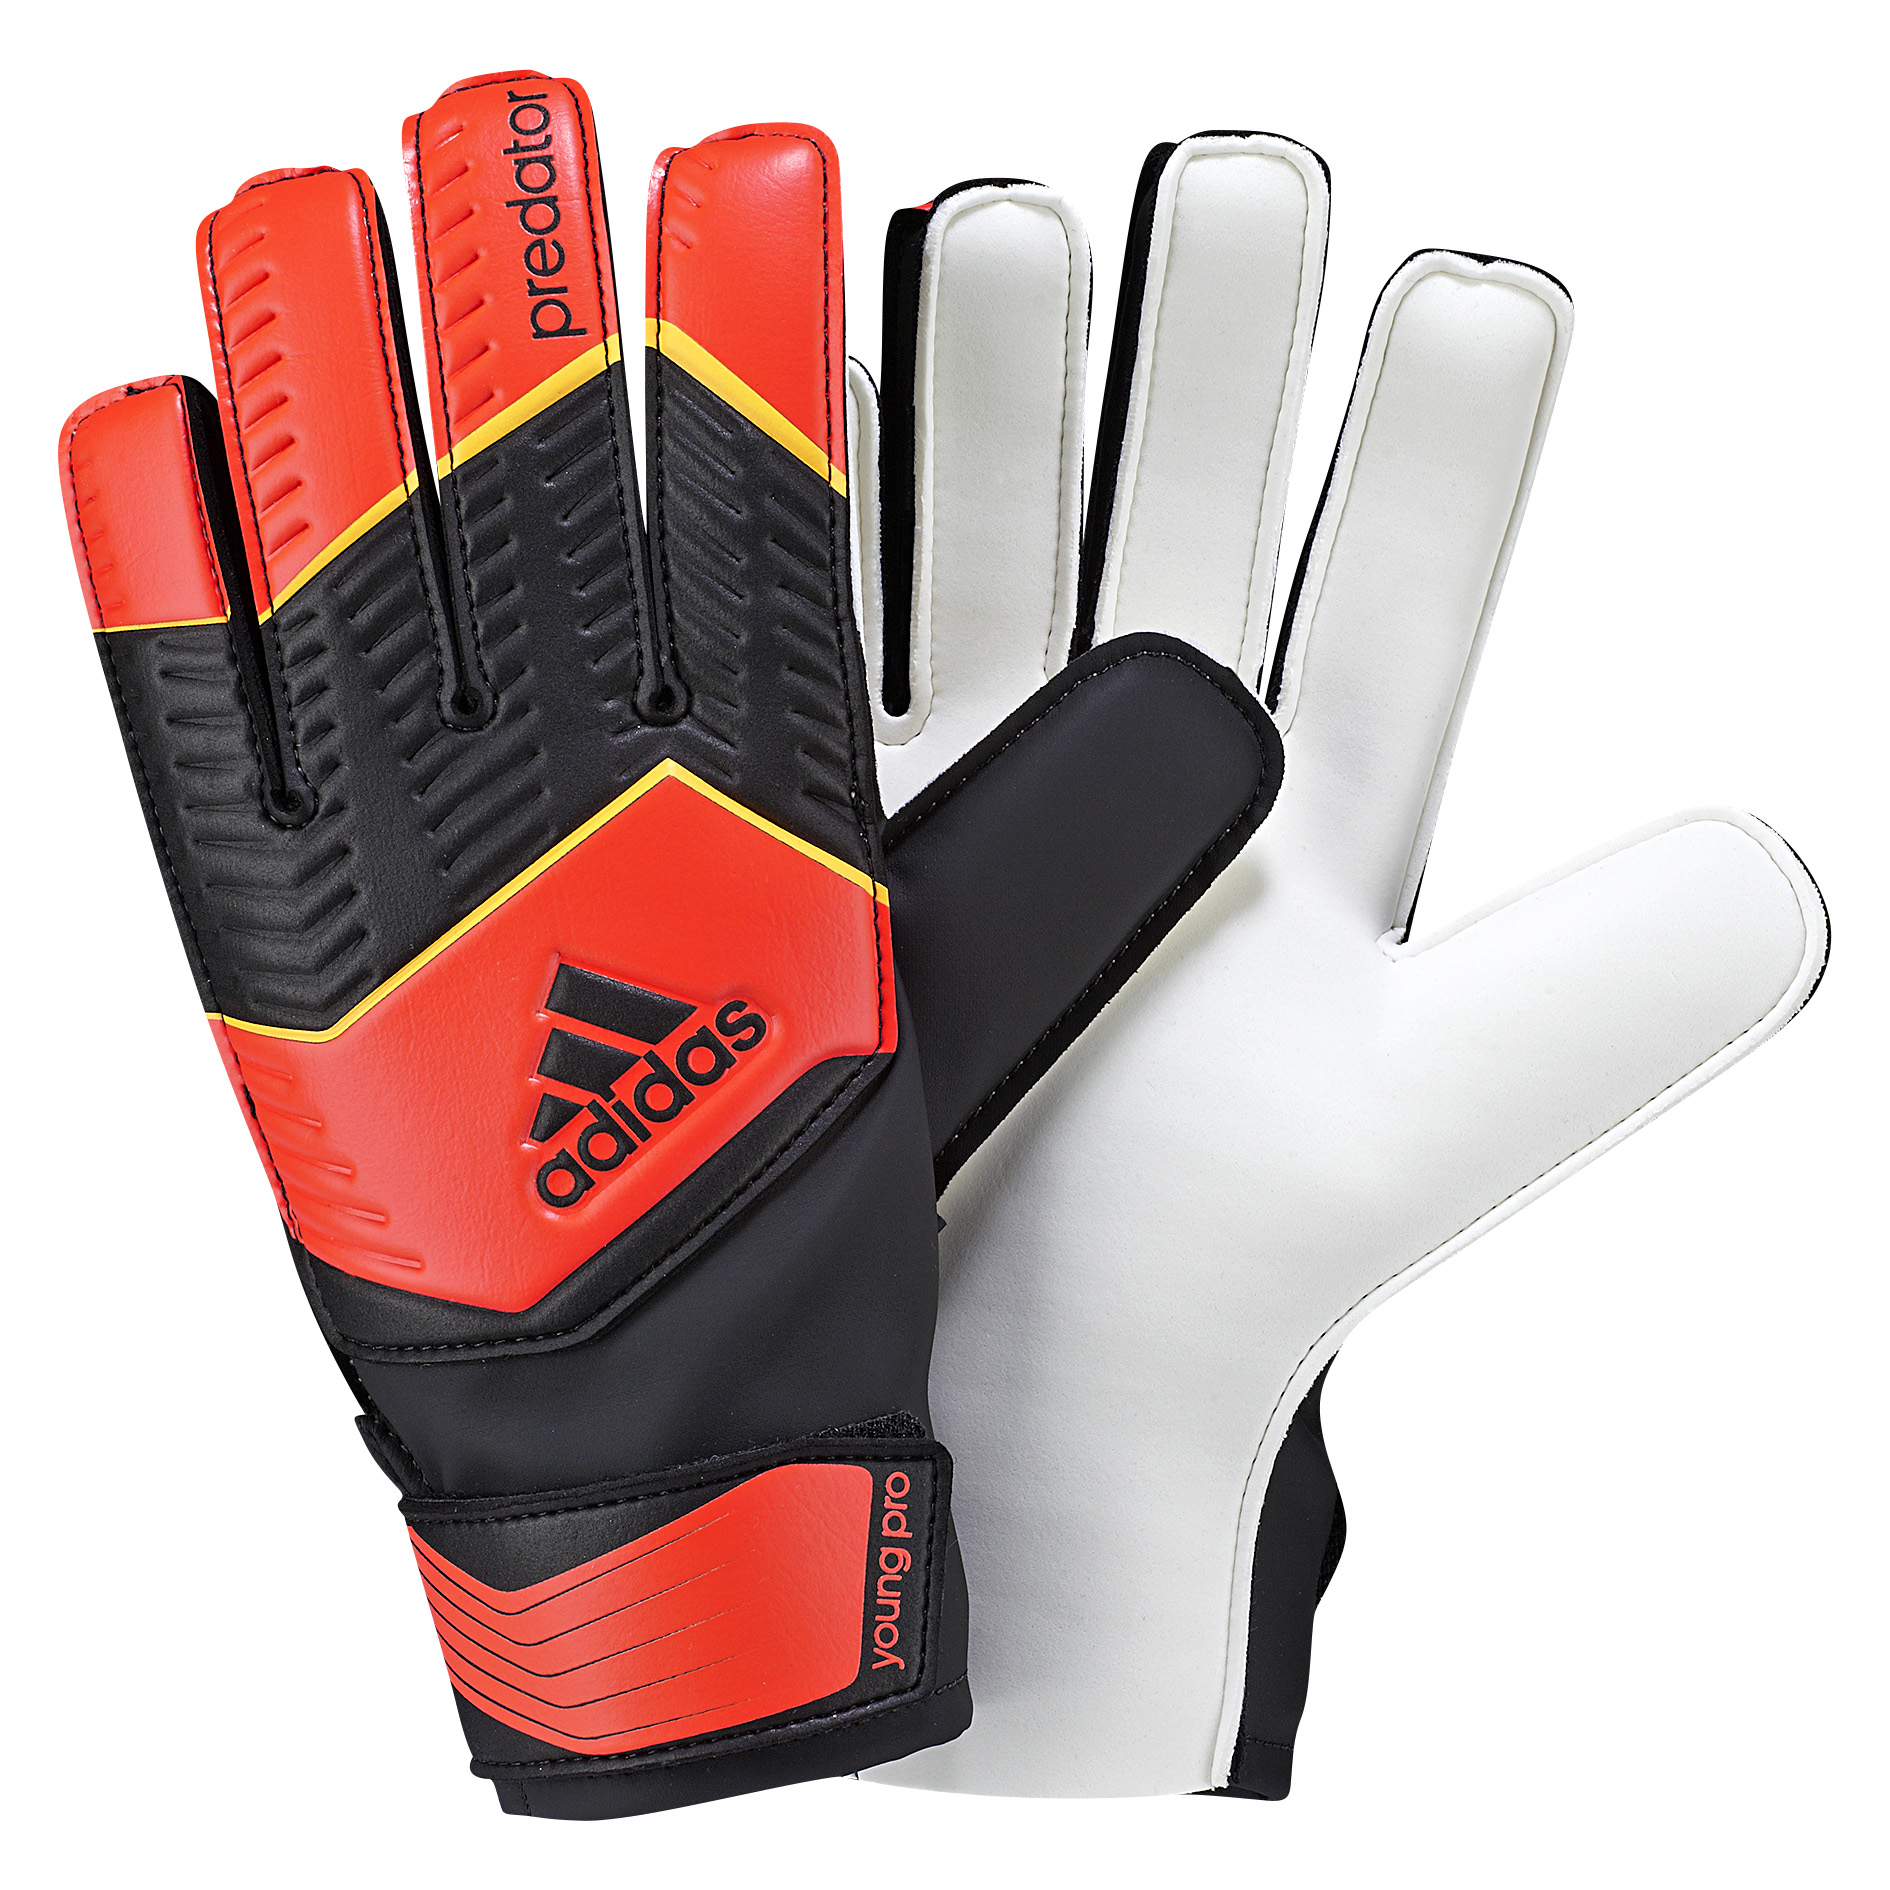 Adidas Predator Young Pro Goalkeeper Glove - Kids Orange